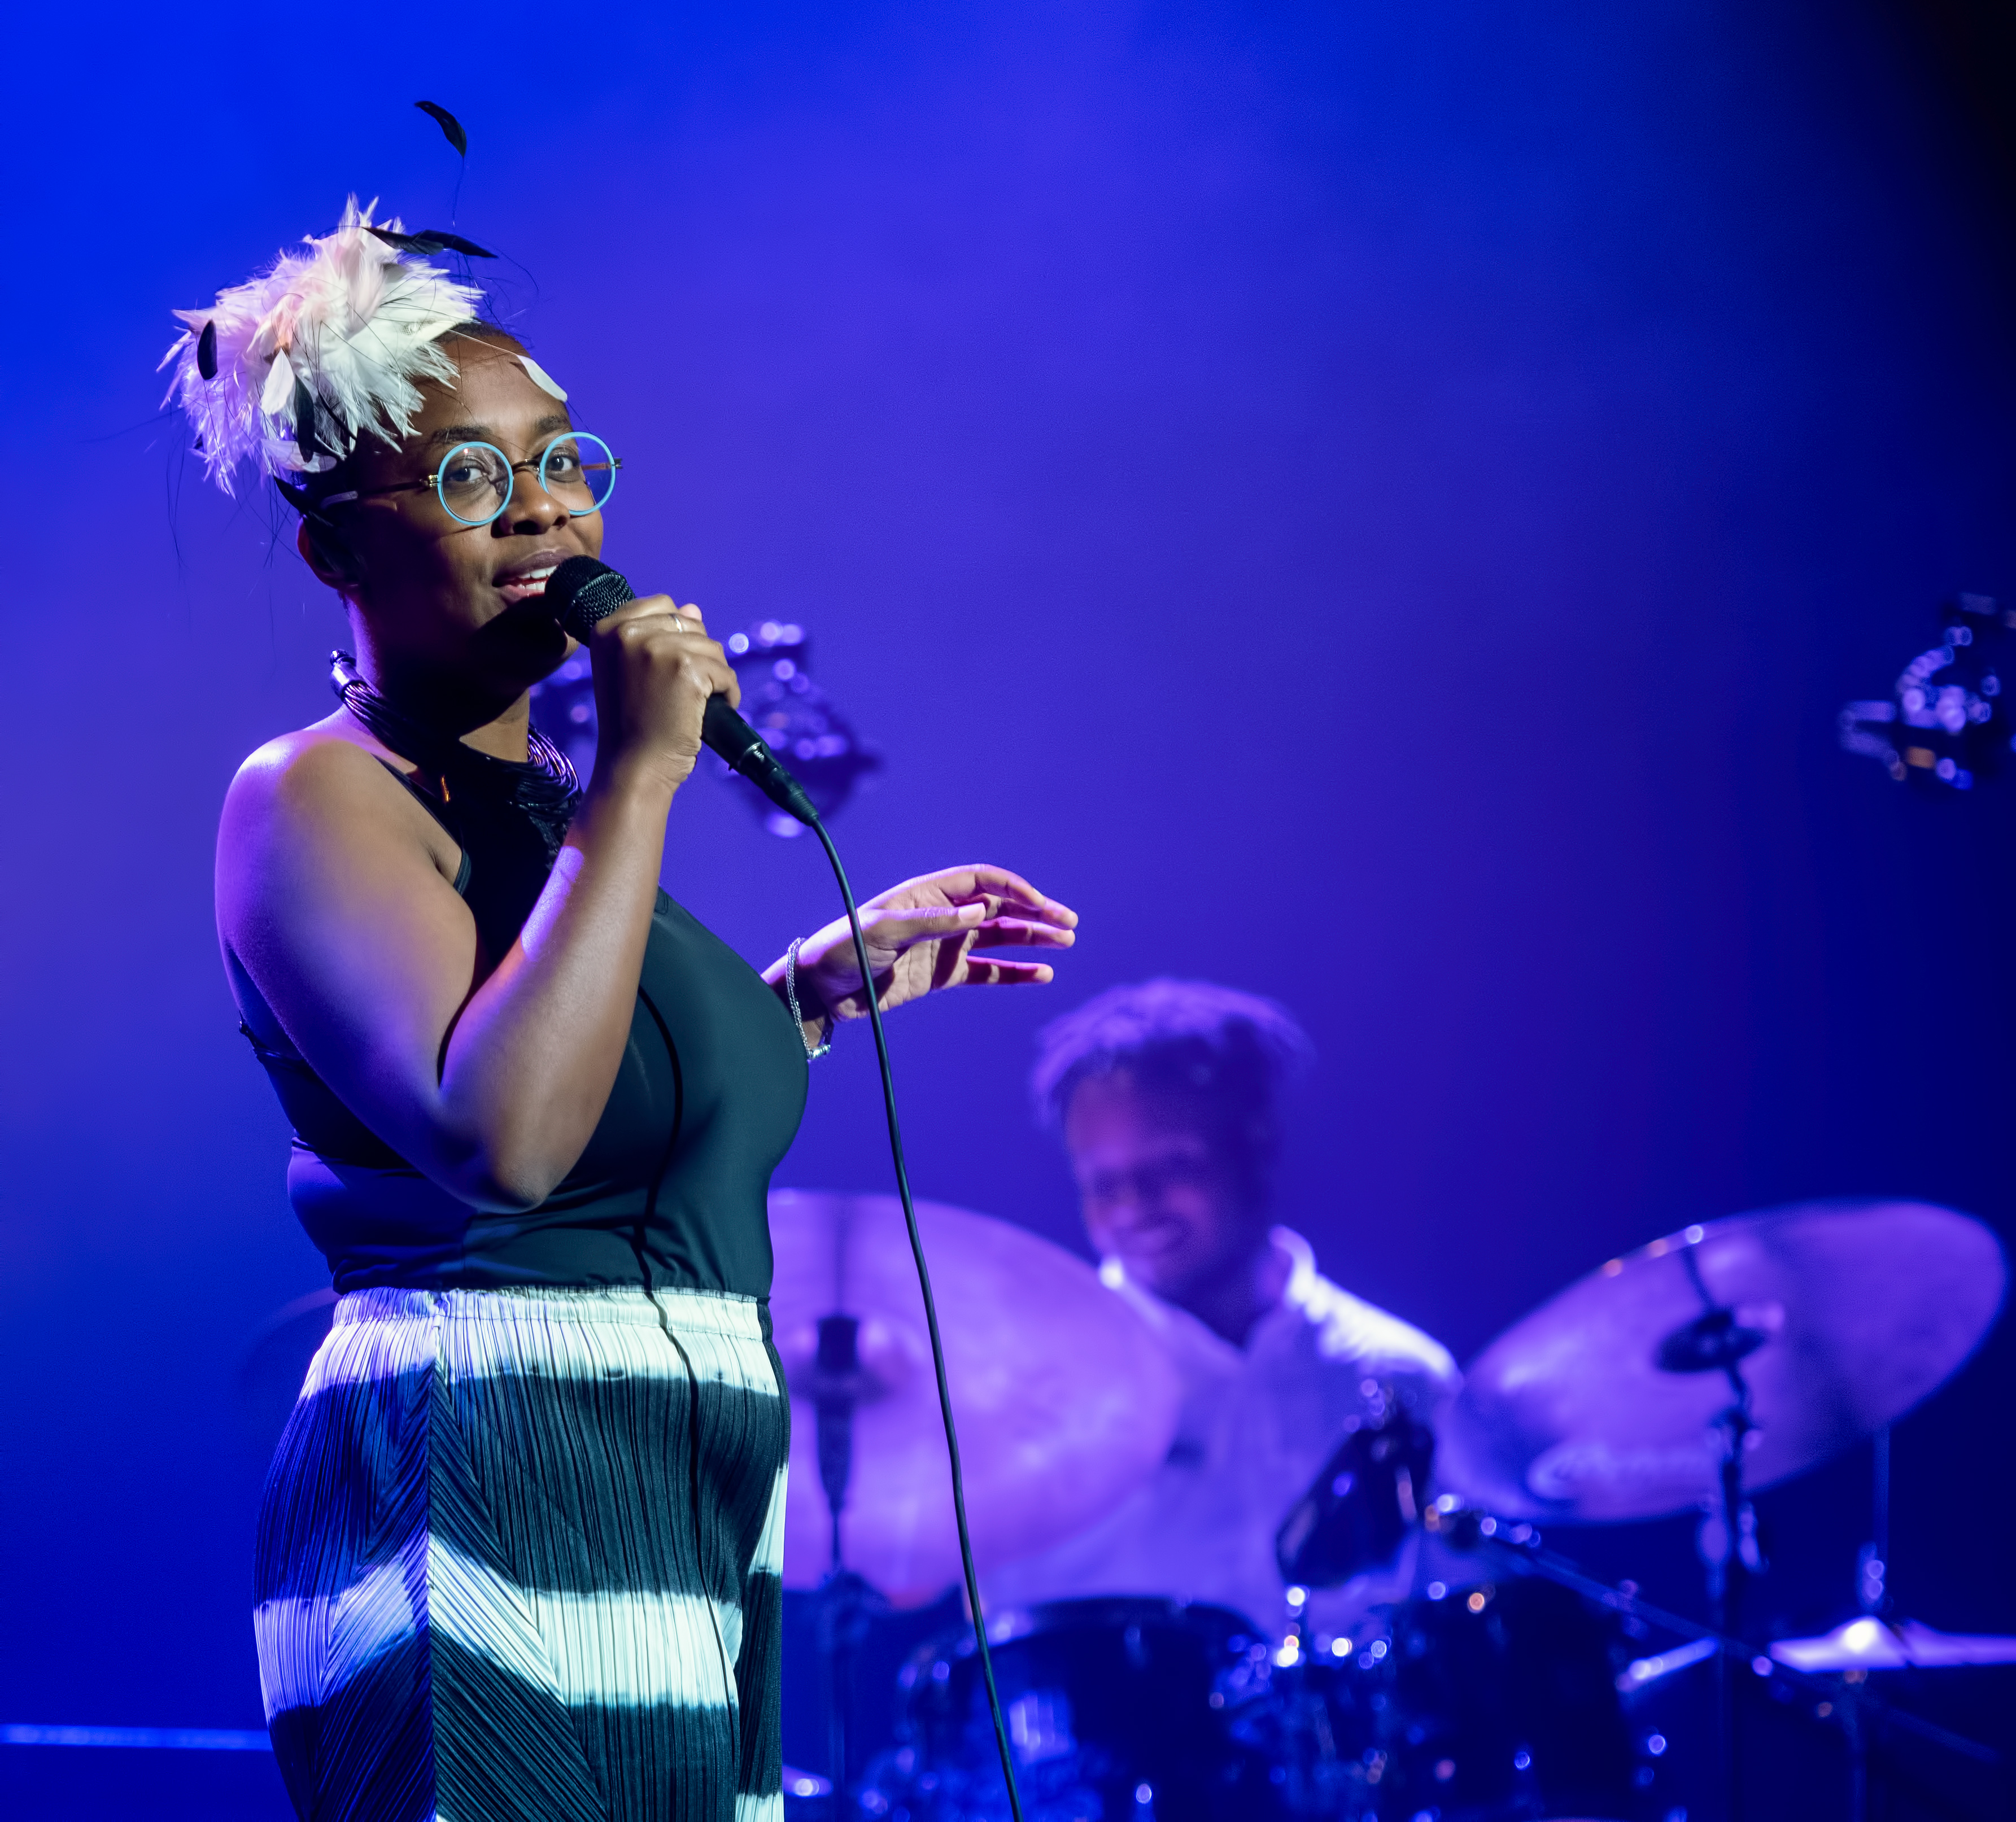 Cécile McLorin Salvant and Kyle Poole at The Montreal International Jazz Festival 2018